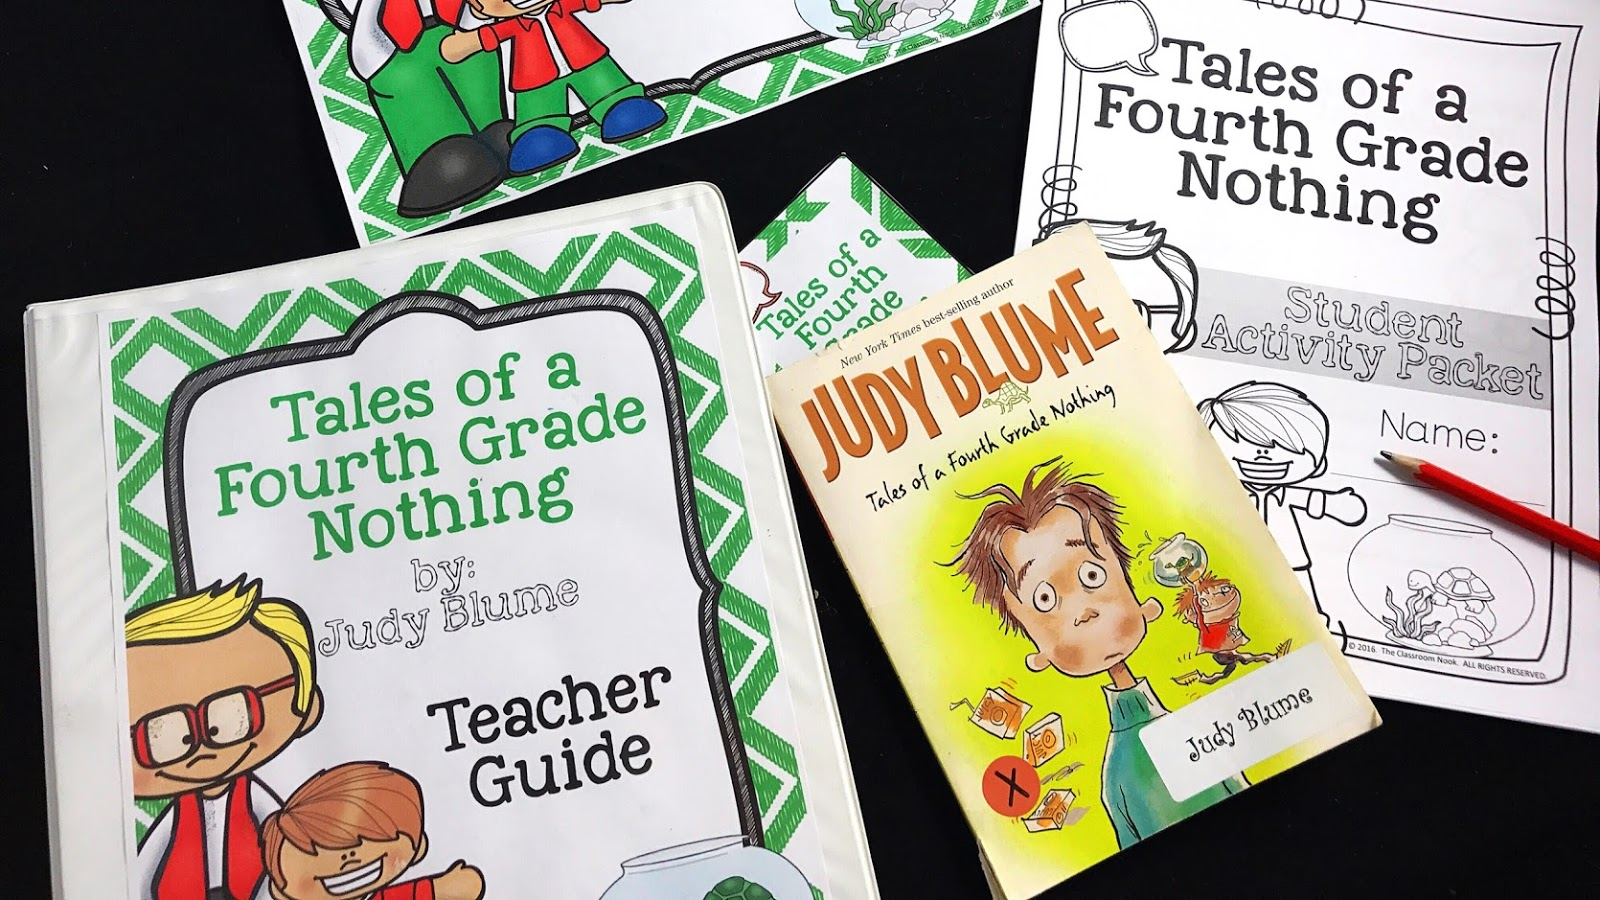 Check out this entire novel unit for teaching Tales of a Fourth Grade Nothing - google classroom compatible and standards aligned